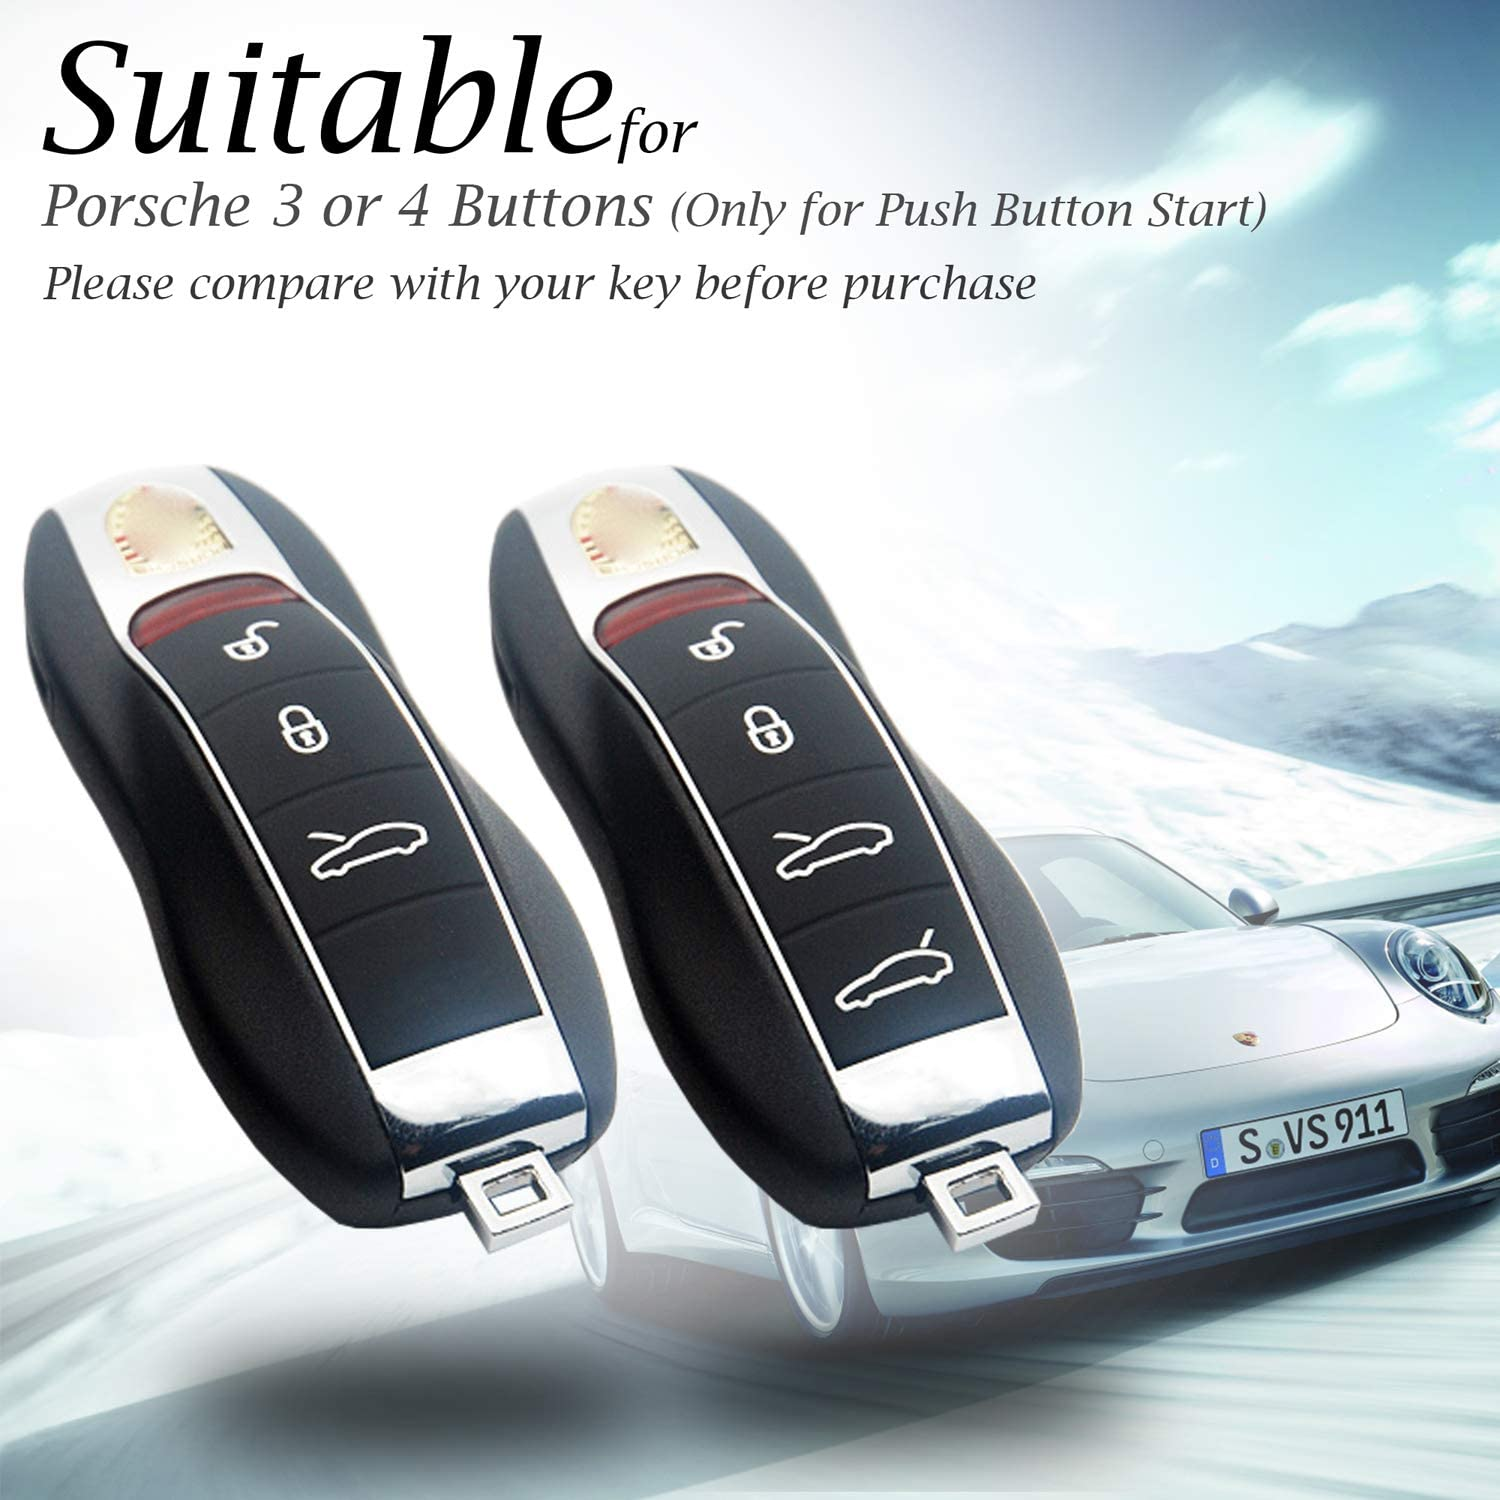 4-Button, Black Vitodeco Genuine Leather Smart Key Fob Remote Case with Leather Key Chain for Porsche 718 Porsche 911 Porsche Panamera Porsche Cayenne